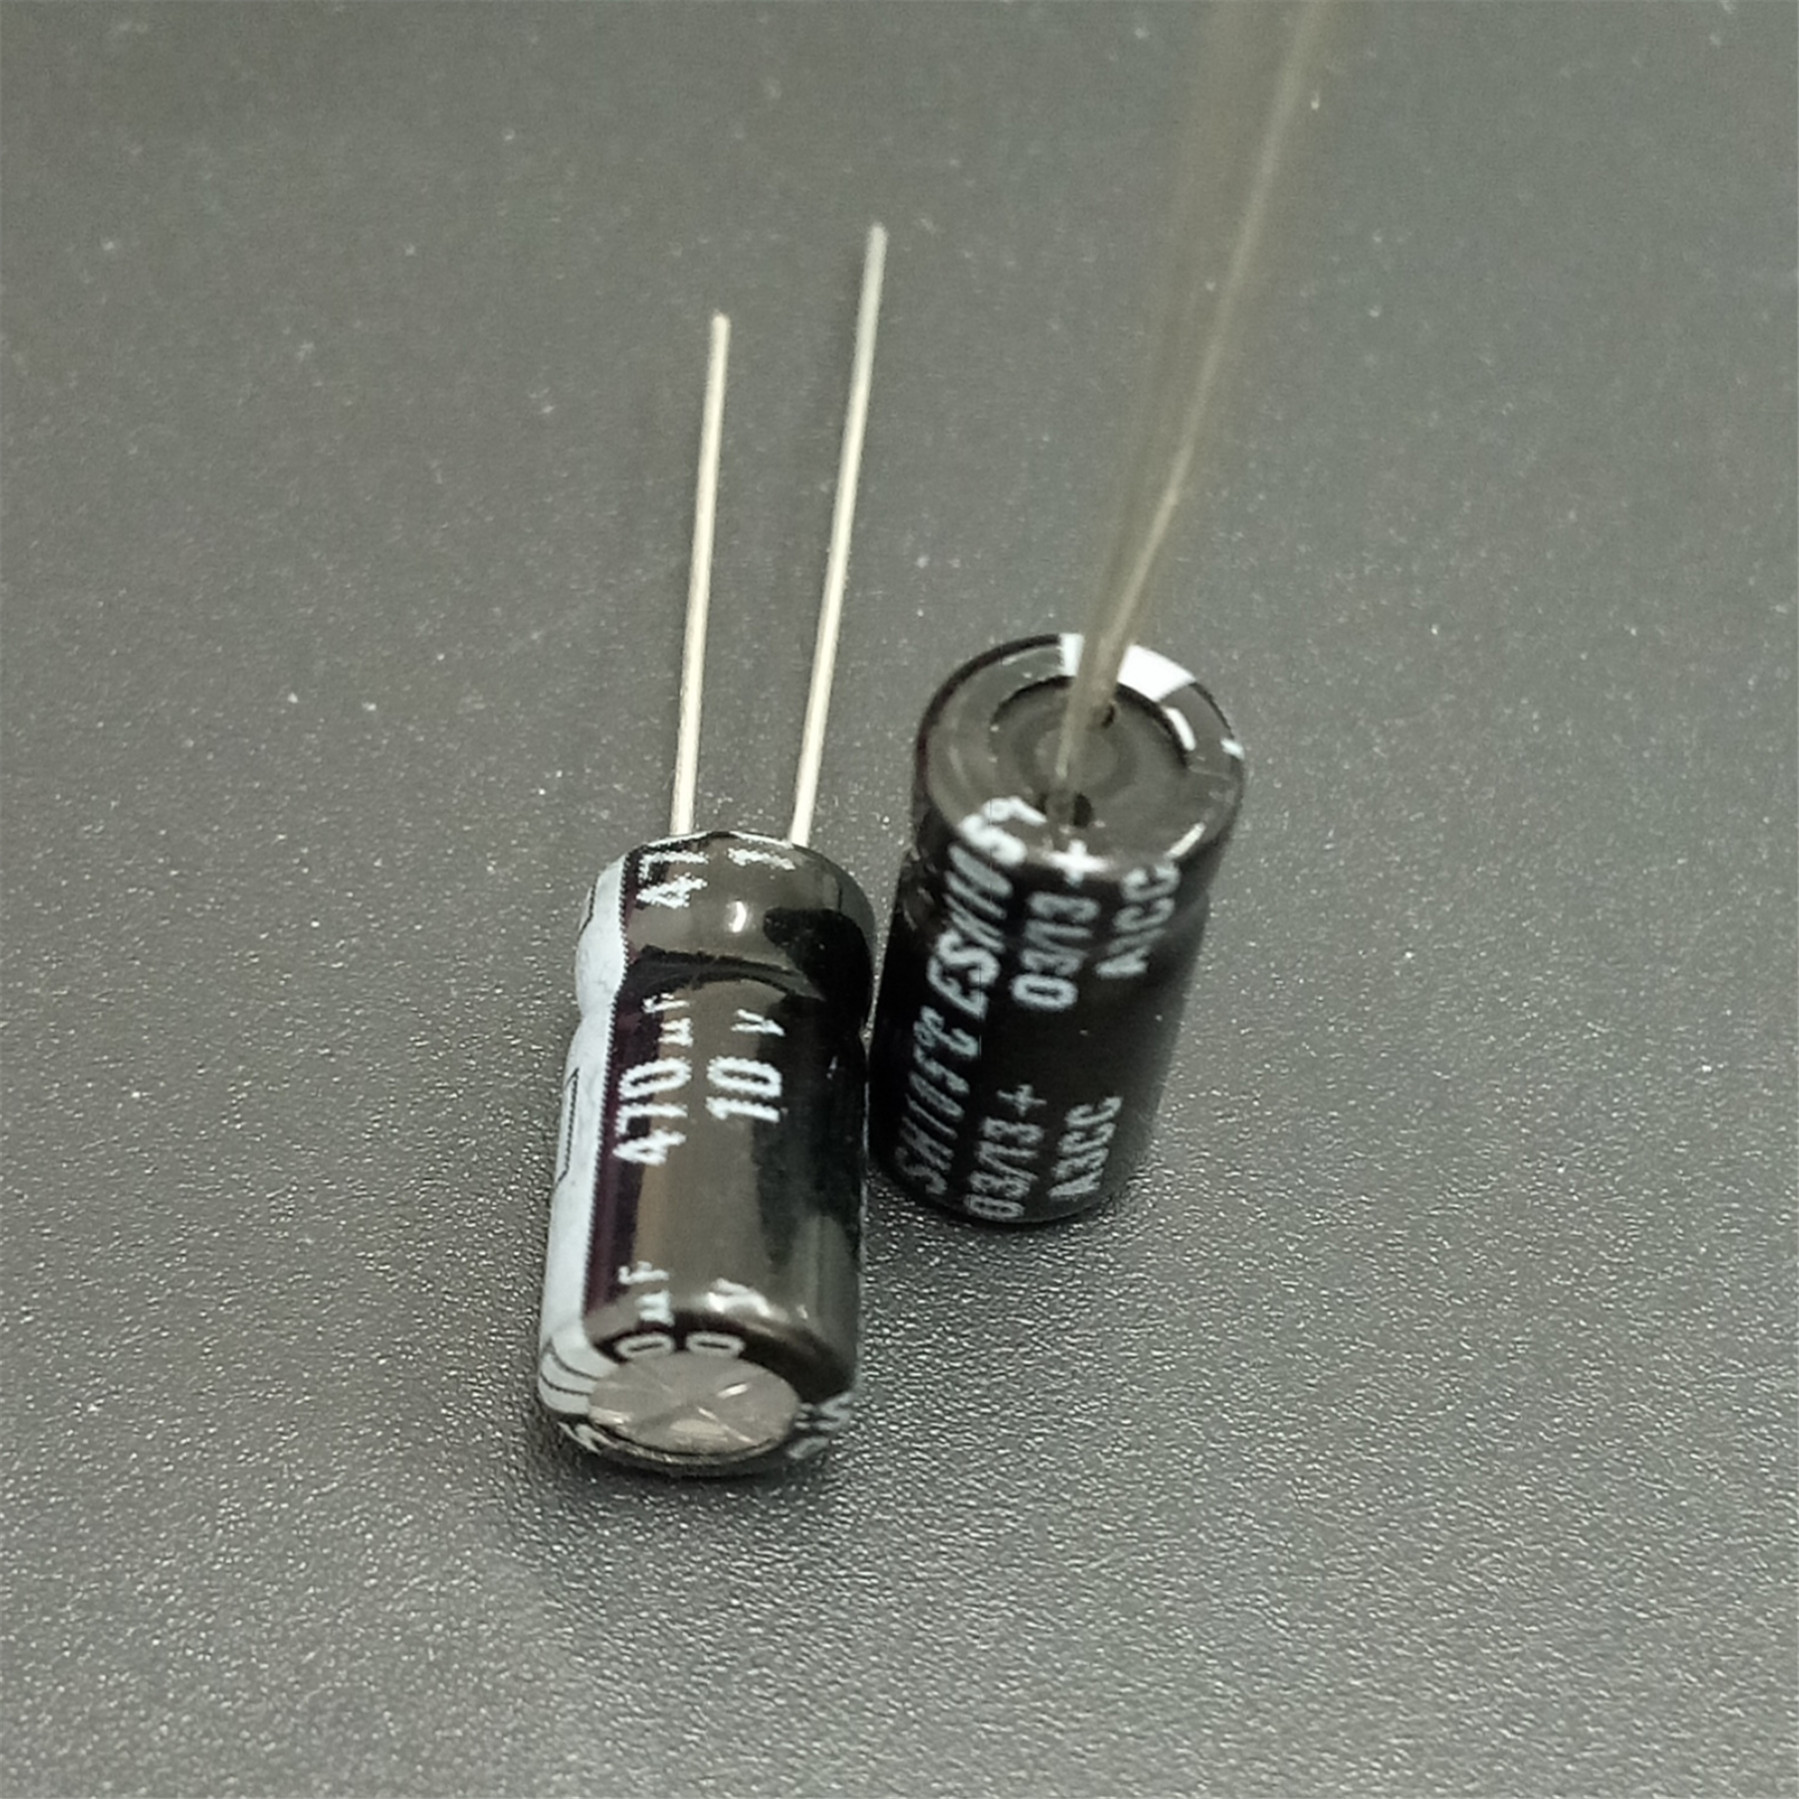 Buy Kemet Capacitor And Get Free Shipping On Tantalum Multiple Anode